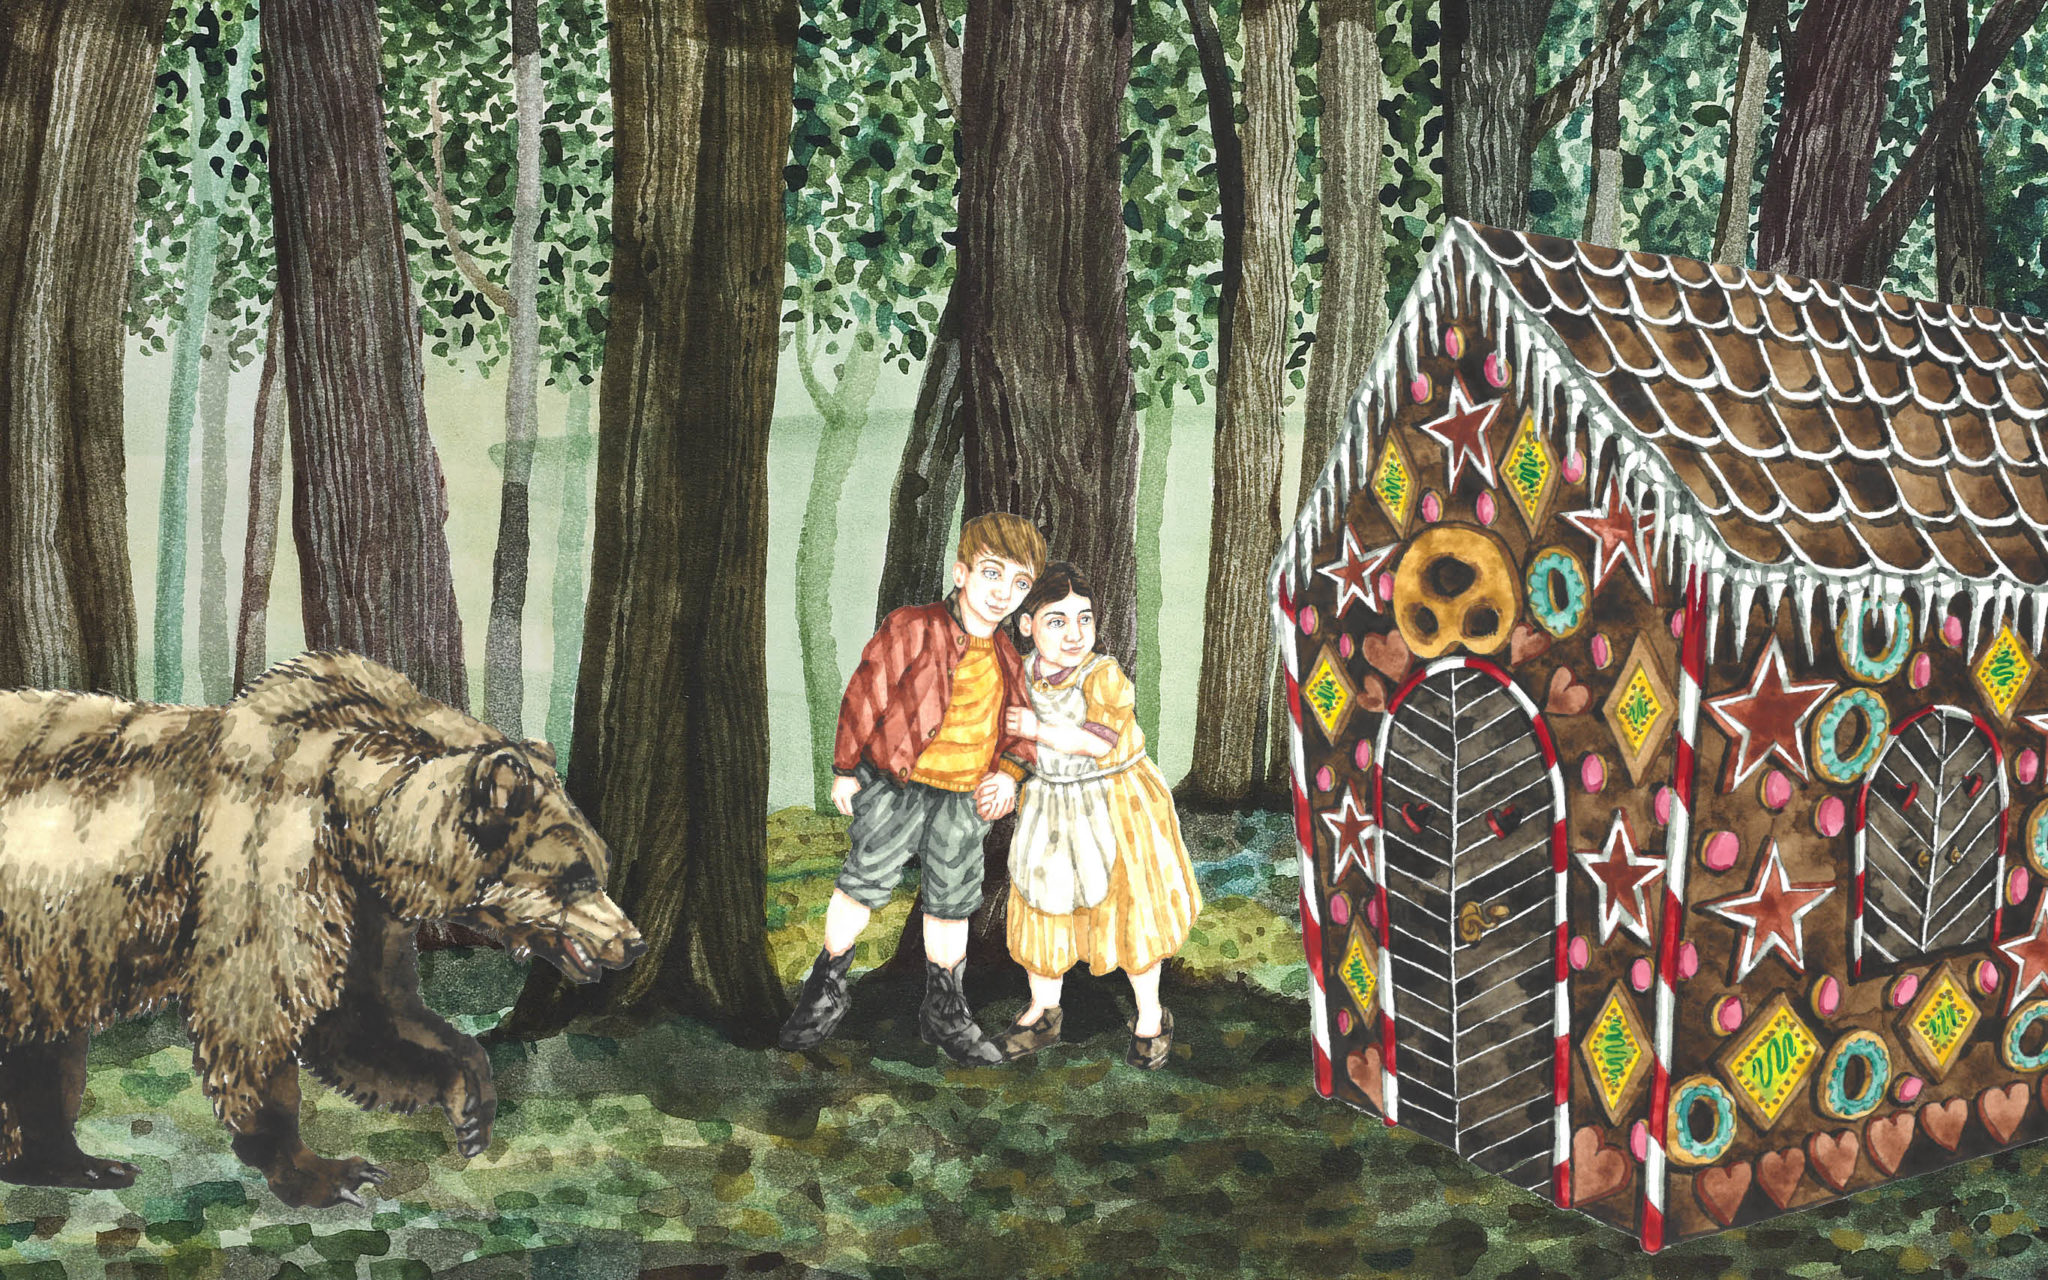 Illustration Hänsel und Gretel, Kulturen in Lund, Schweden